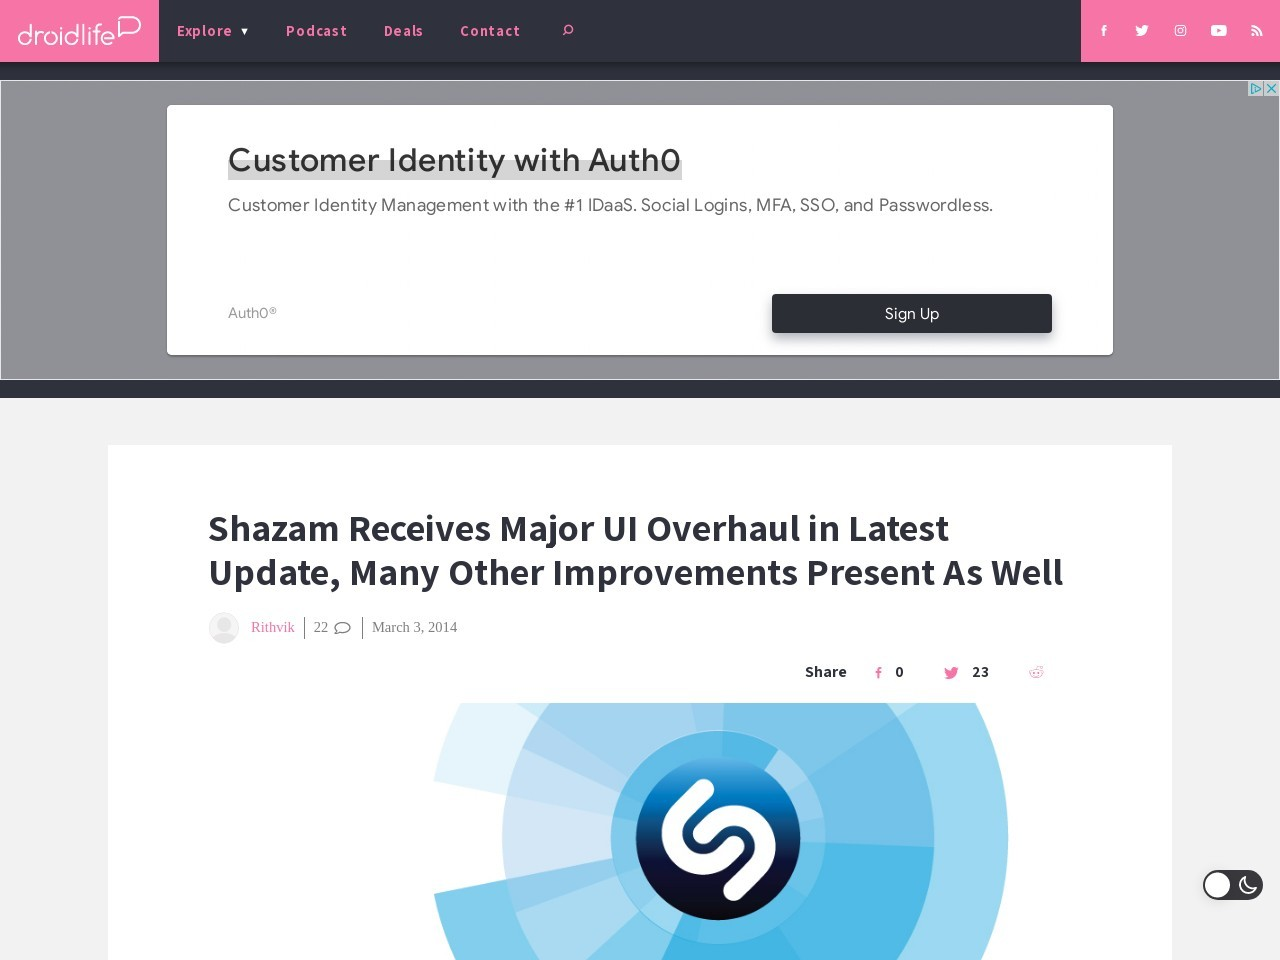 Shazam Receives Major UI Overhaul in Latest Update, Many Other …